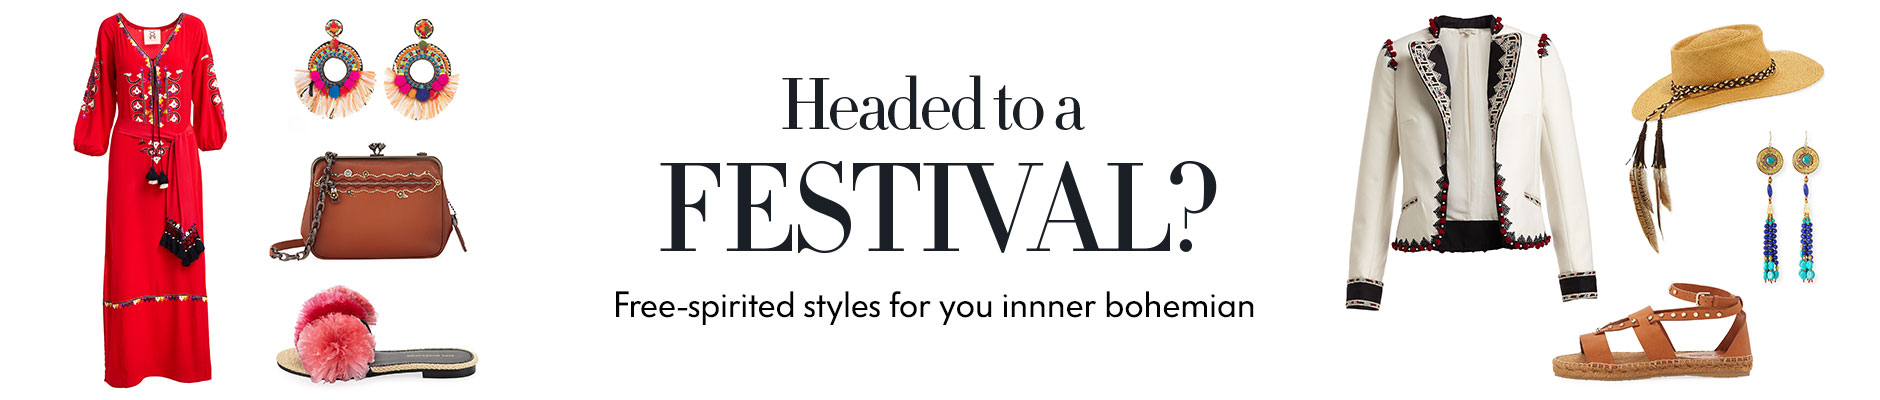 Headed to a Festival? Free-spirited styles for you innner bohemian